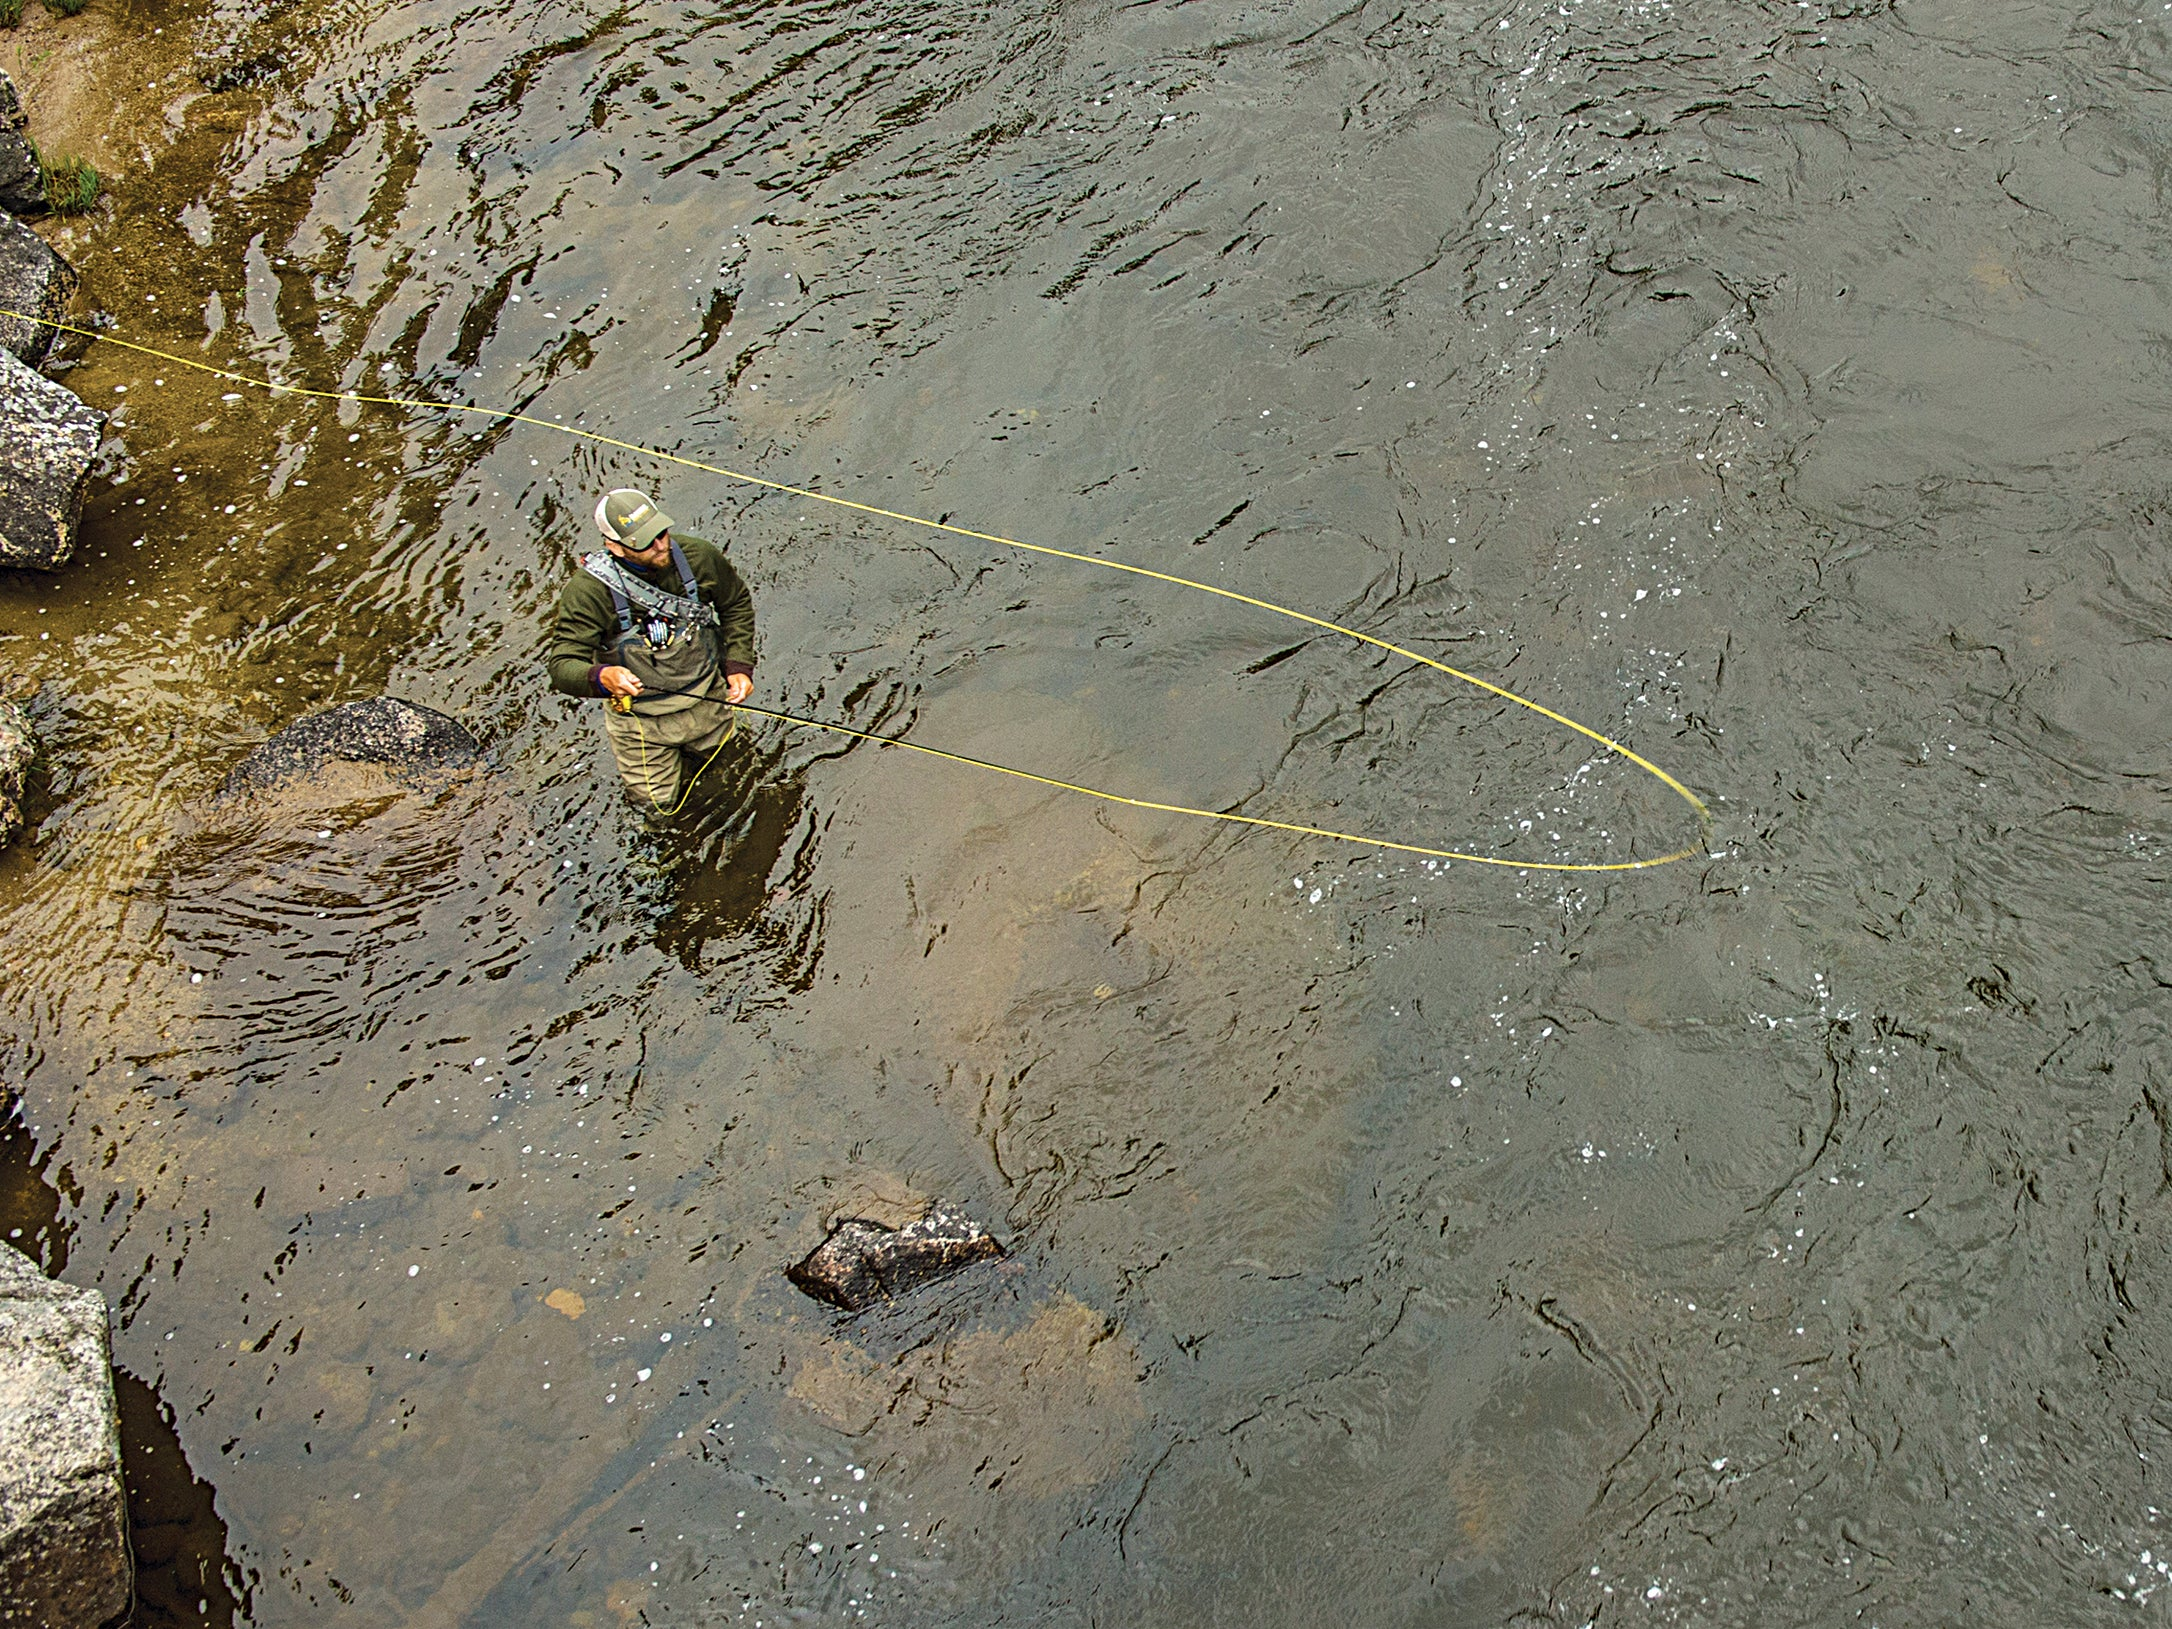 Flyfishing: In Search of the Perfect Cast